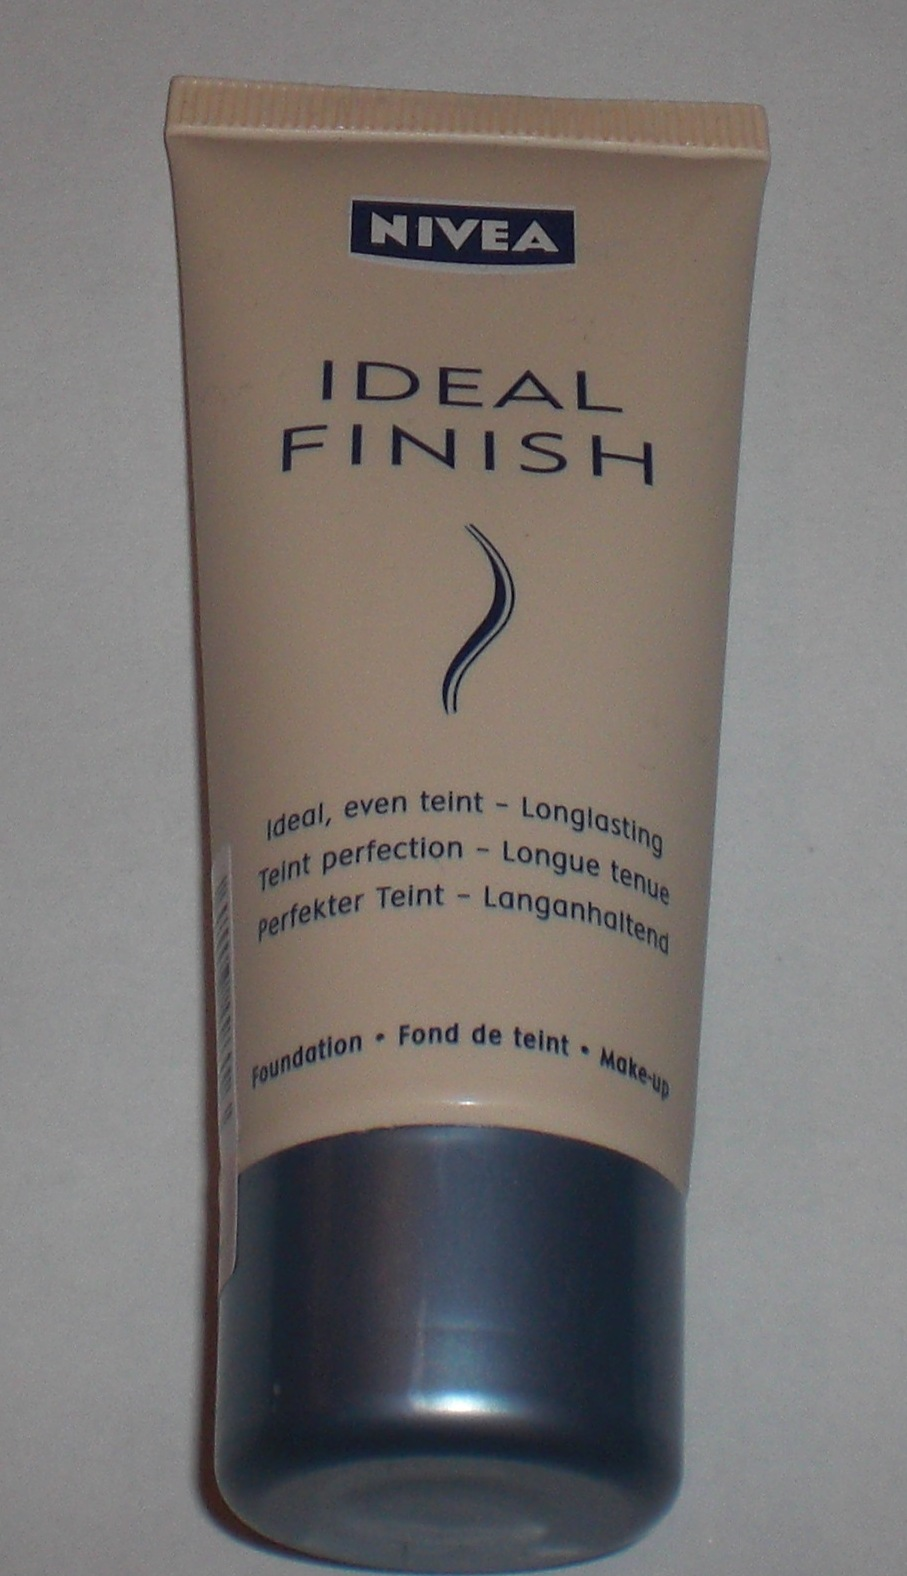 nivea ideal finish